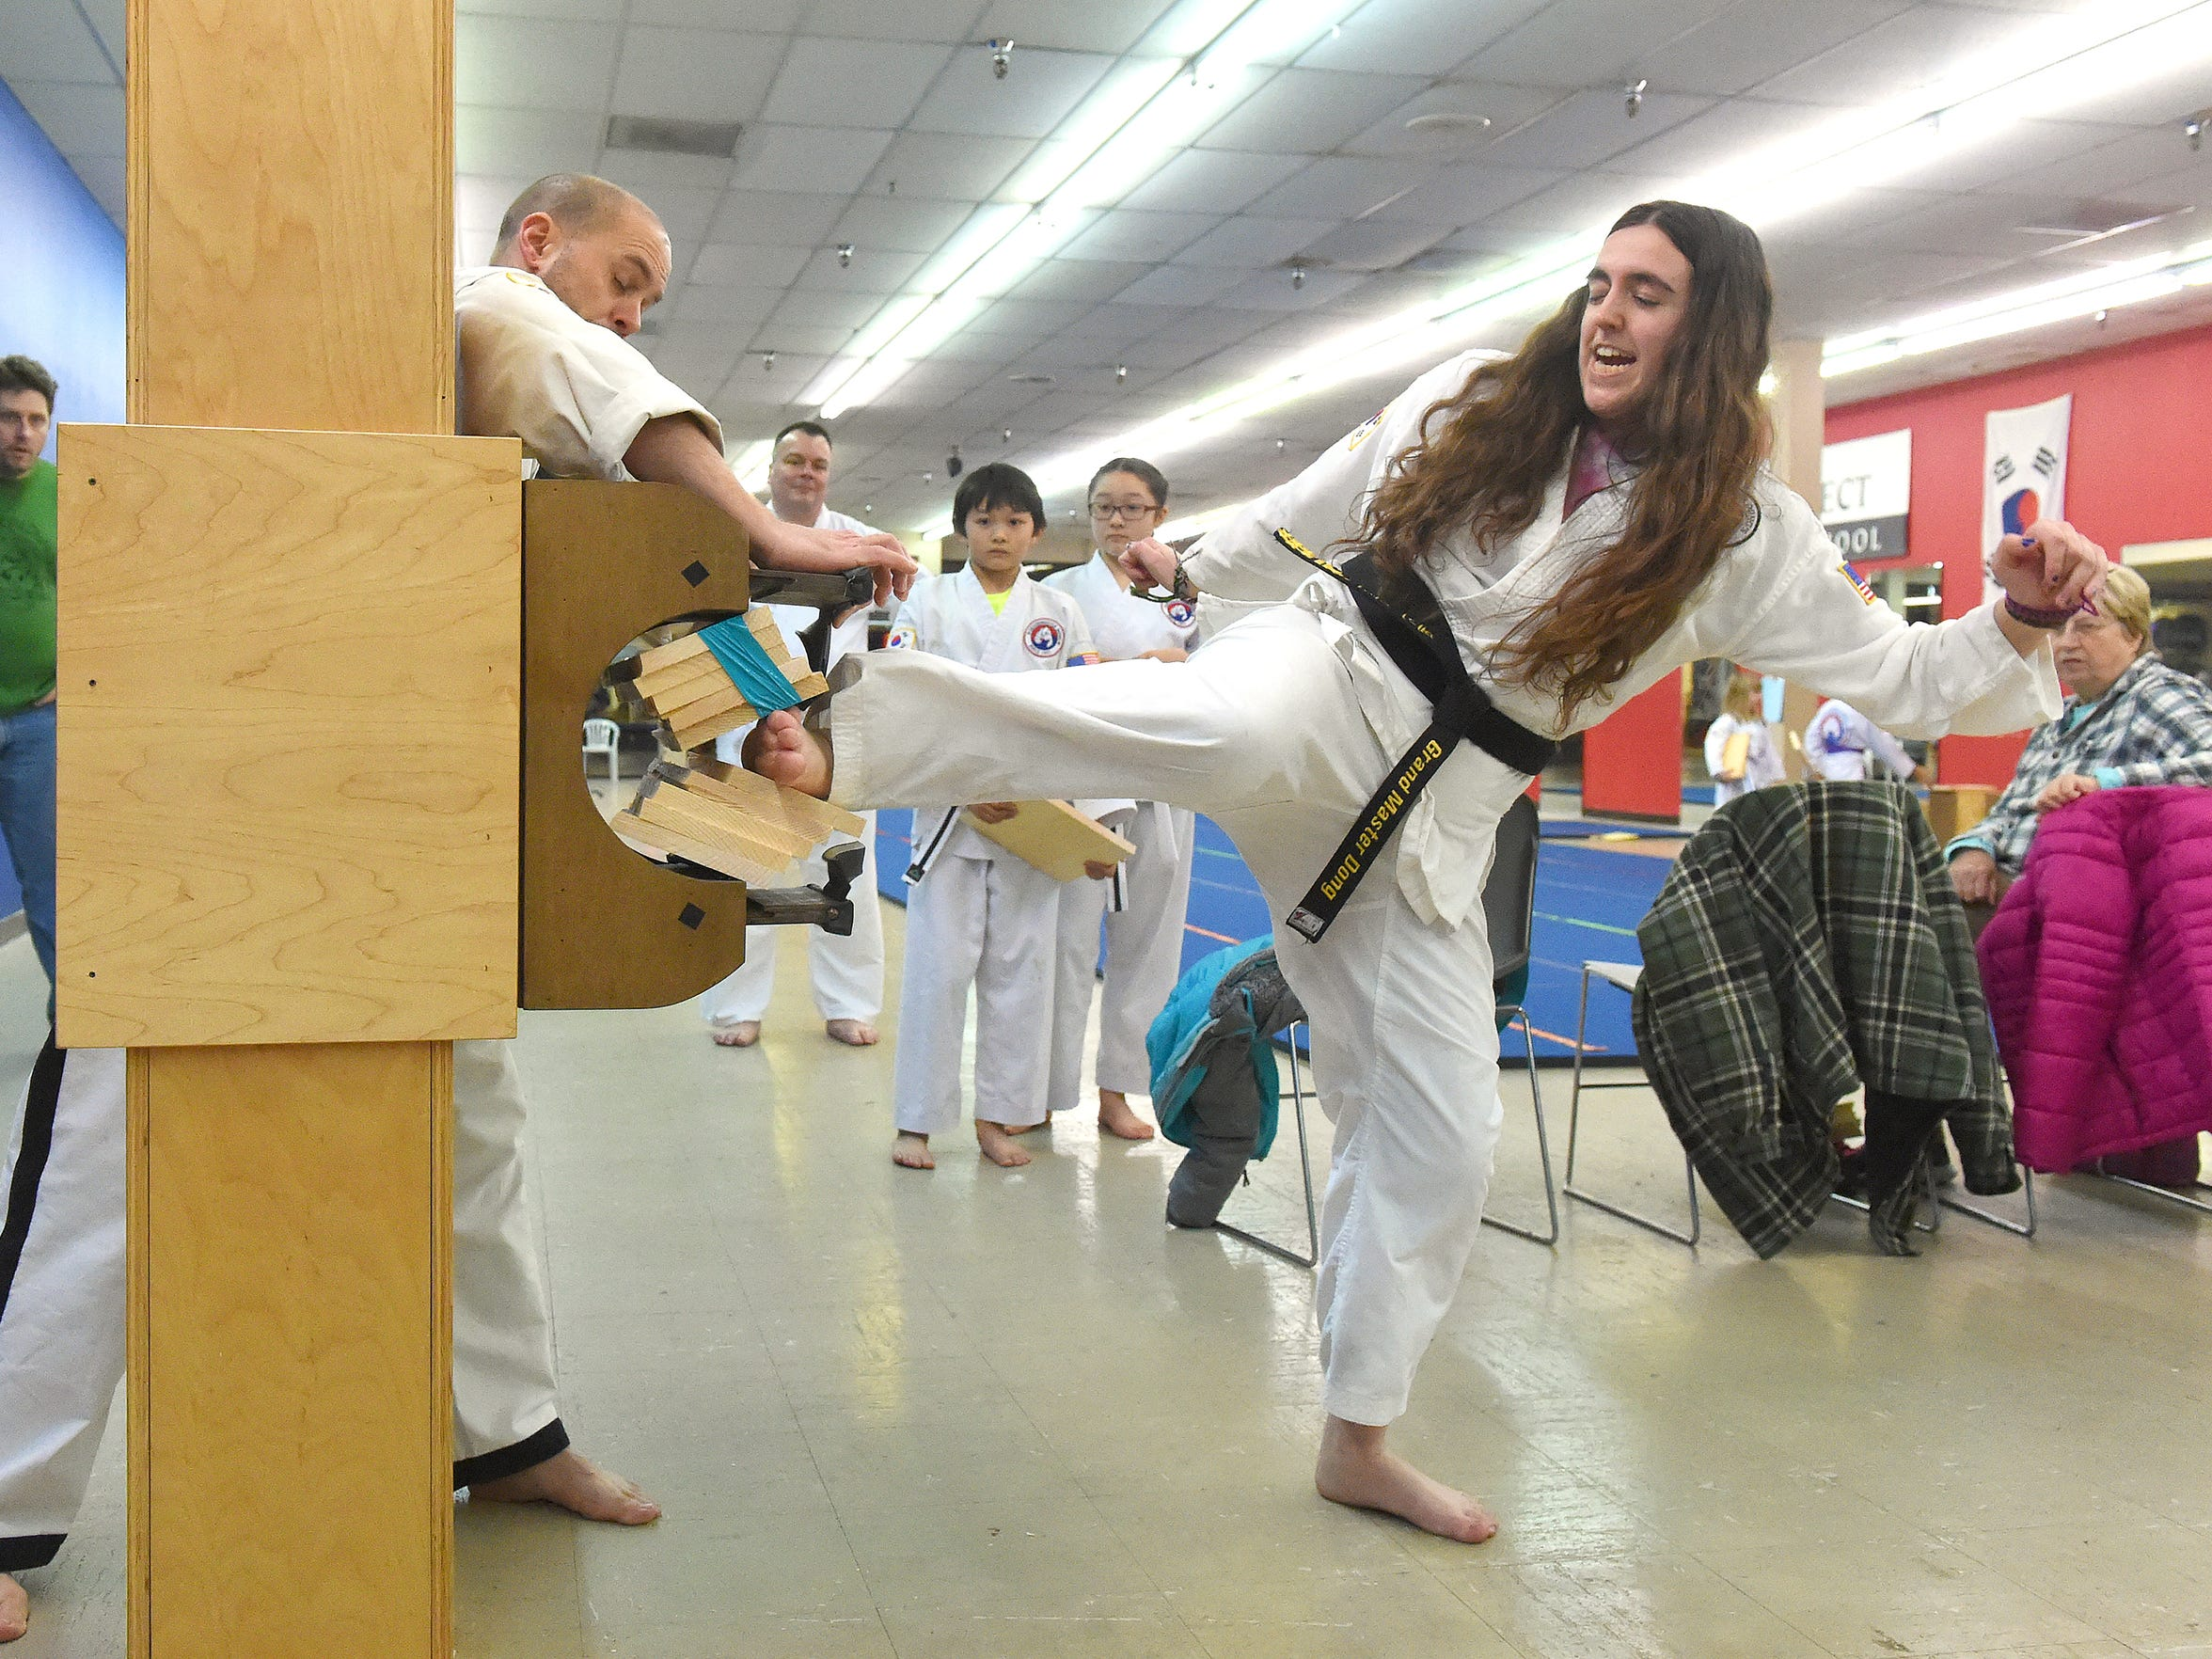 Maggie Rivers, a 2nd degree black belt in Tae Kwon Do, breaks five boards with a side kick during a class at the Dong's Martial Arts studio in Staunton on Feb. 3, 2017.